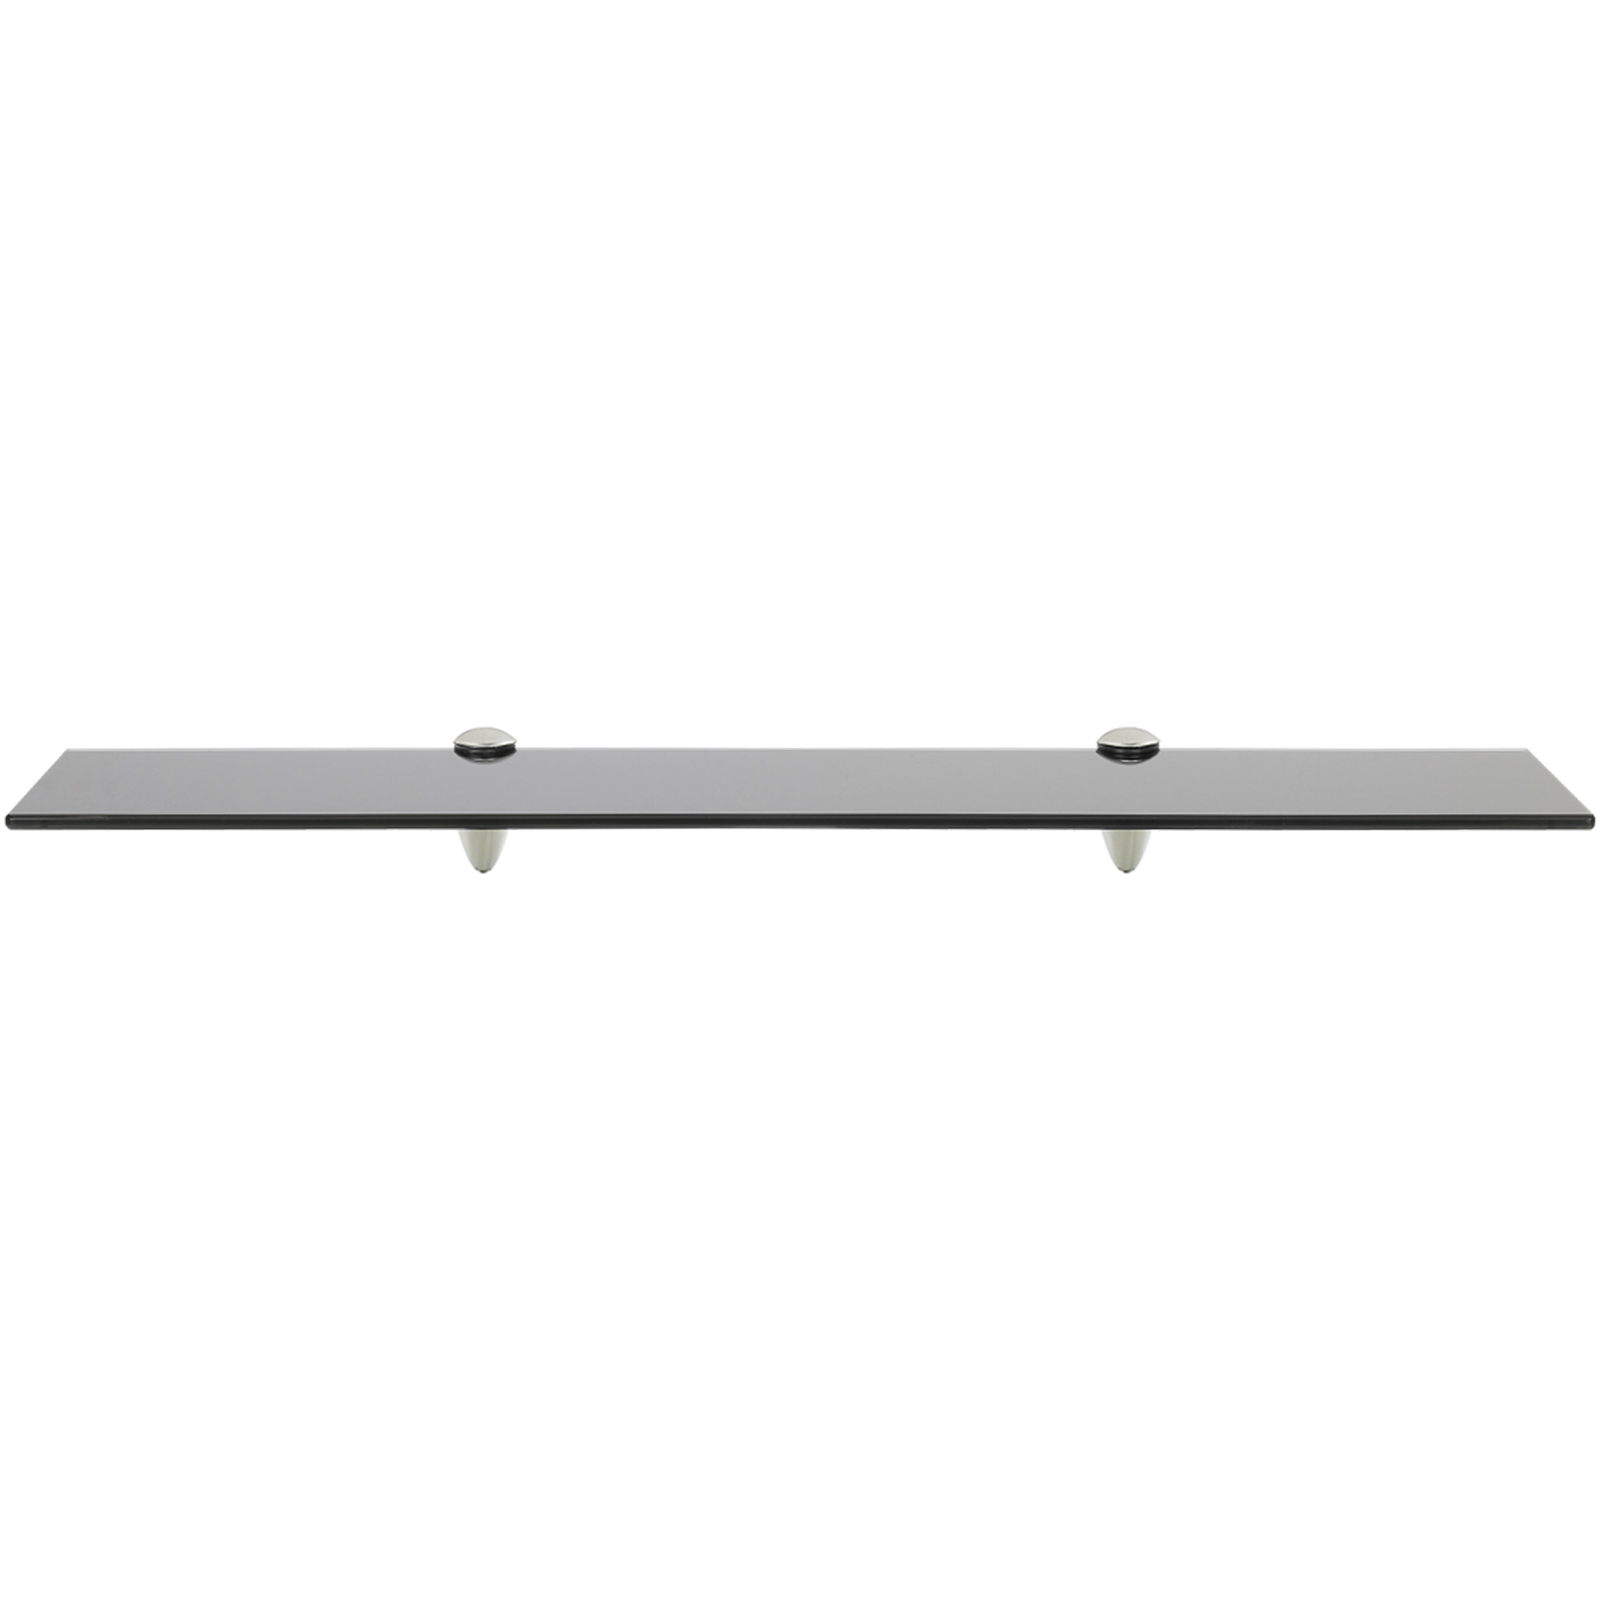 HARTLEYS-BLACK-GLASS-FLOATING-WALL-MOUNTED-SHELF-CHROME-FIXINGS-BATHROOM-DISPLAY thumbnail 22